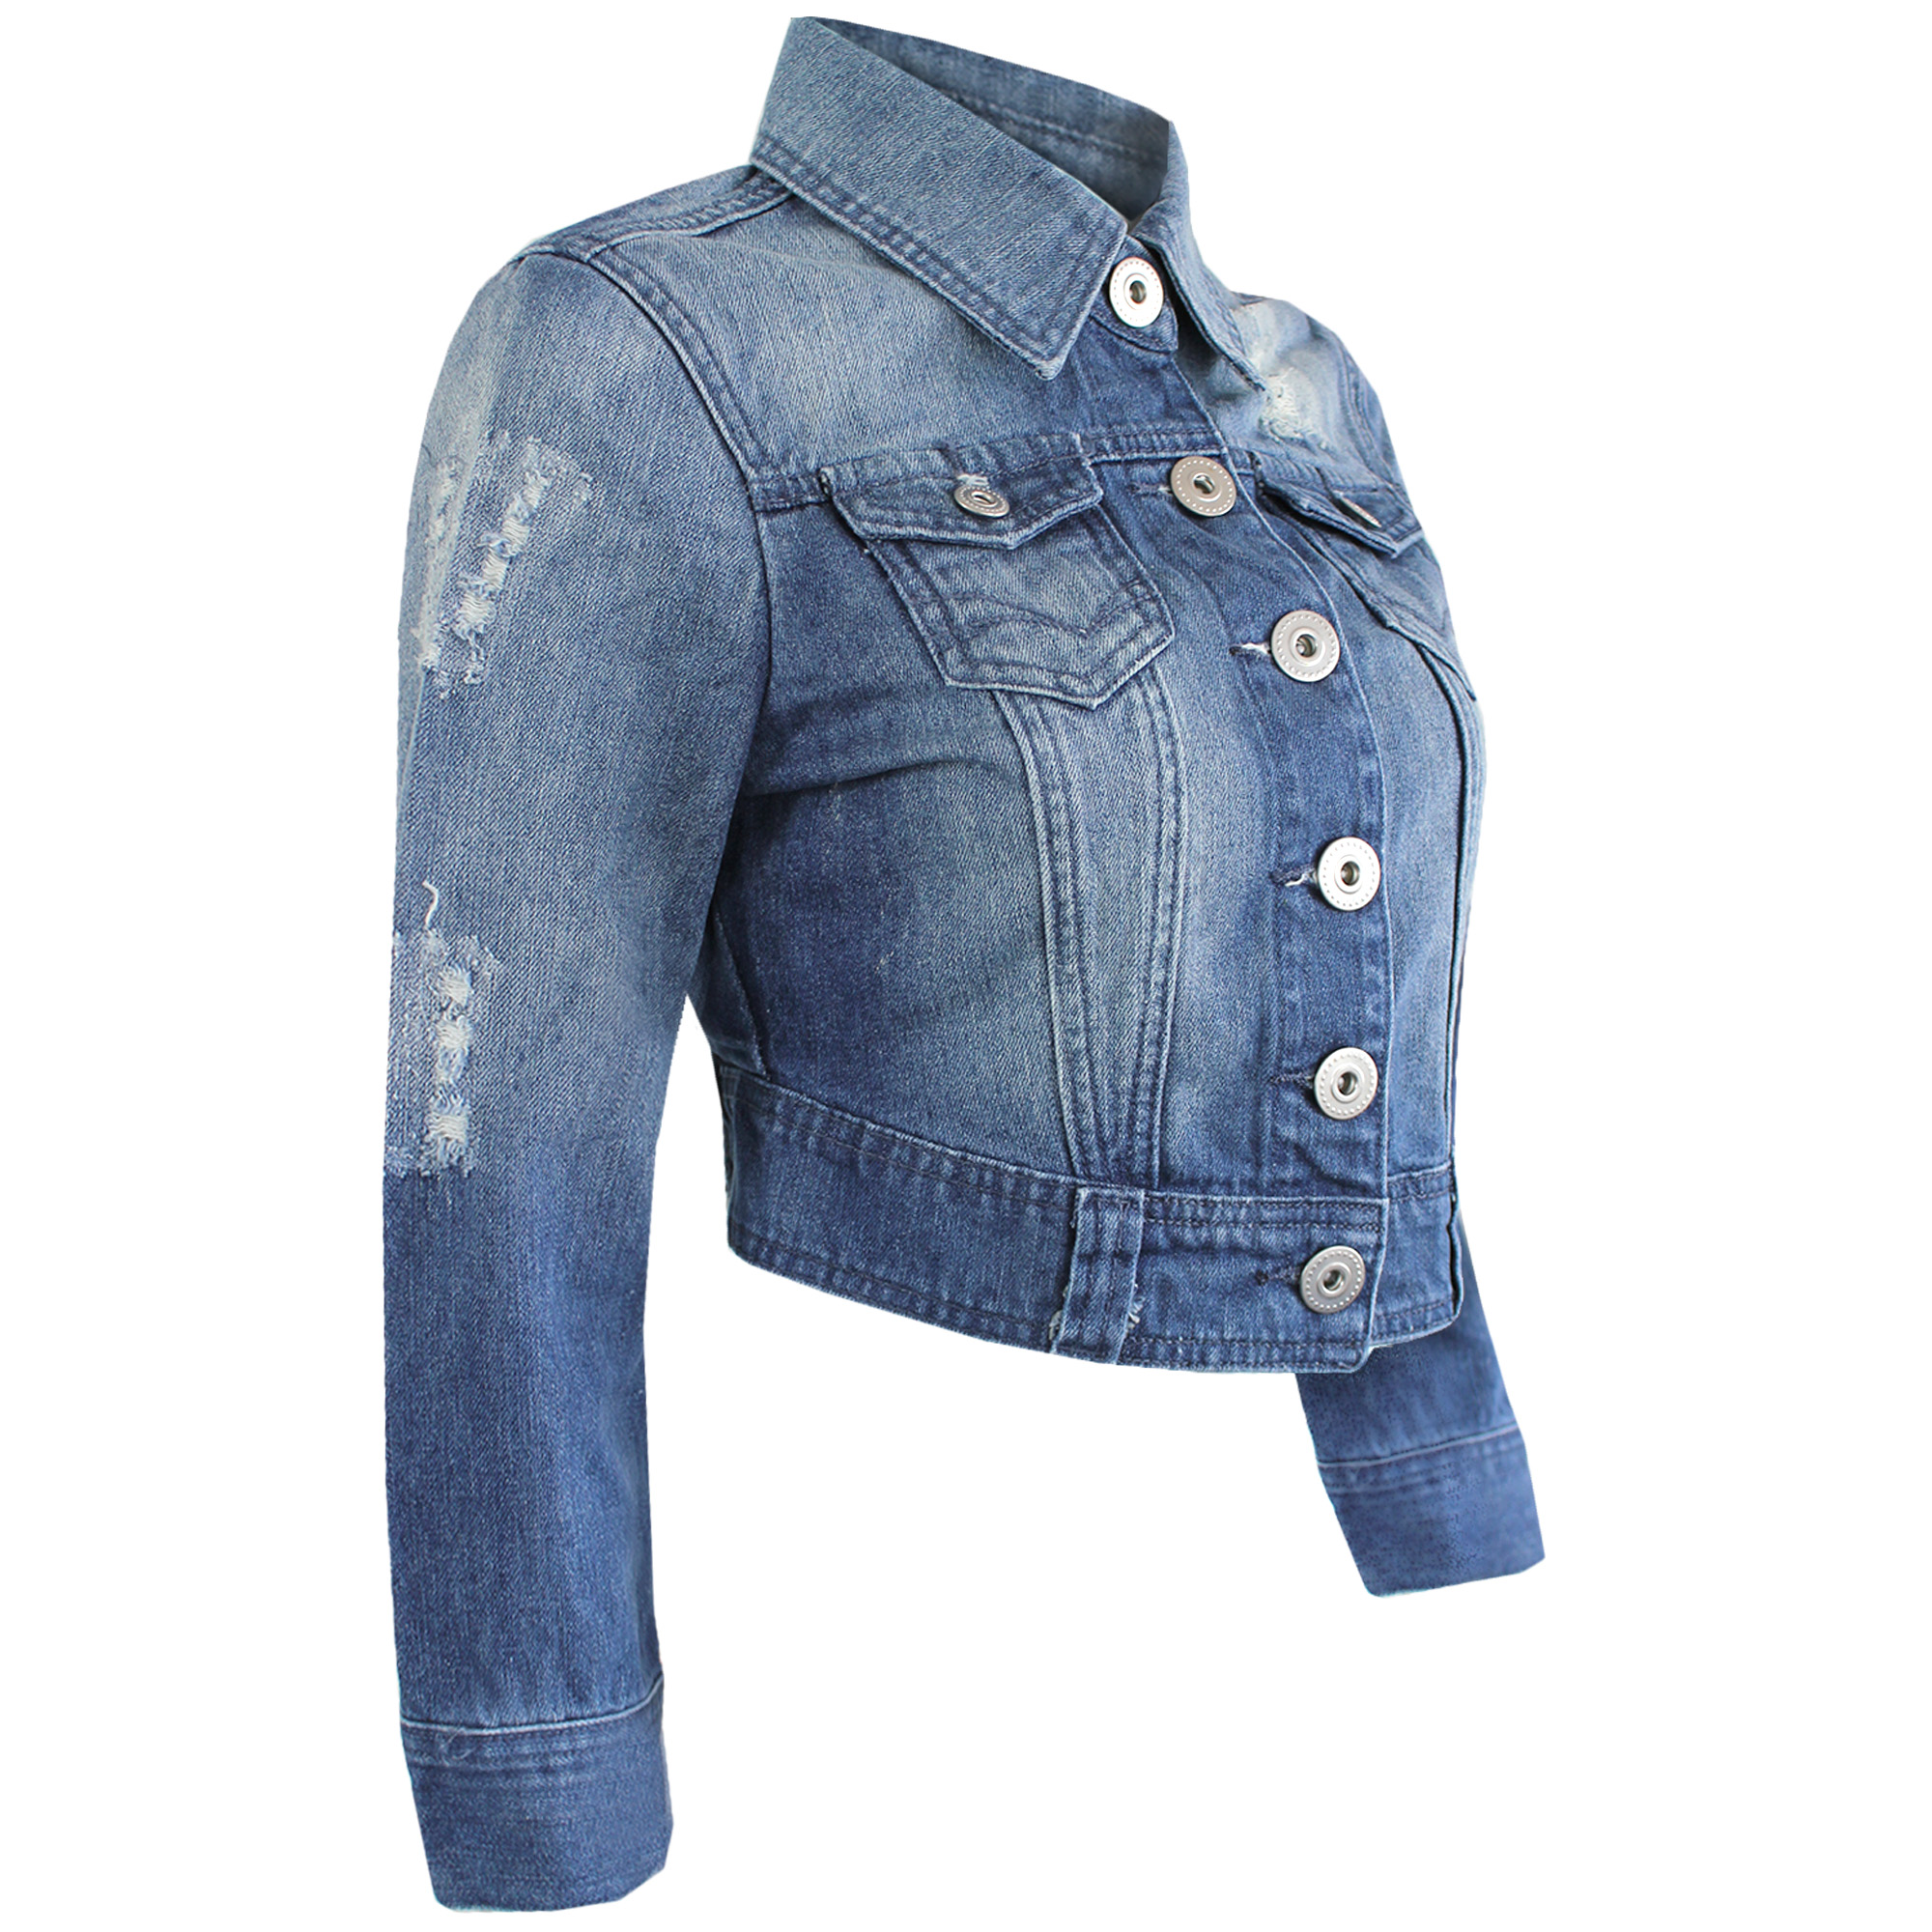 LADIES CROPPED DENIM BLUE WASH JACKET WOMENS FESTIVAL JEANS COAT